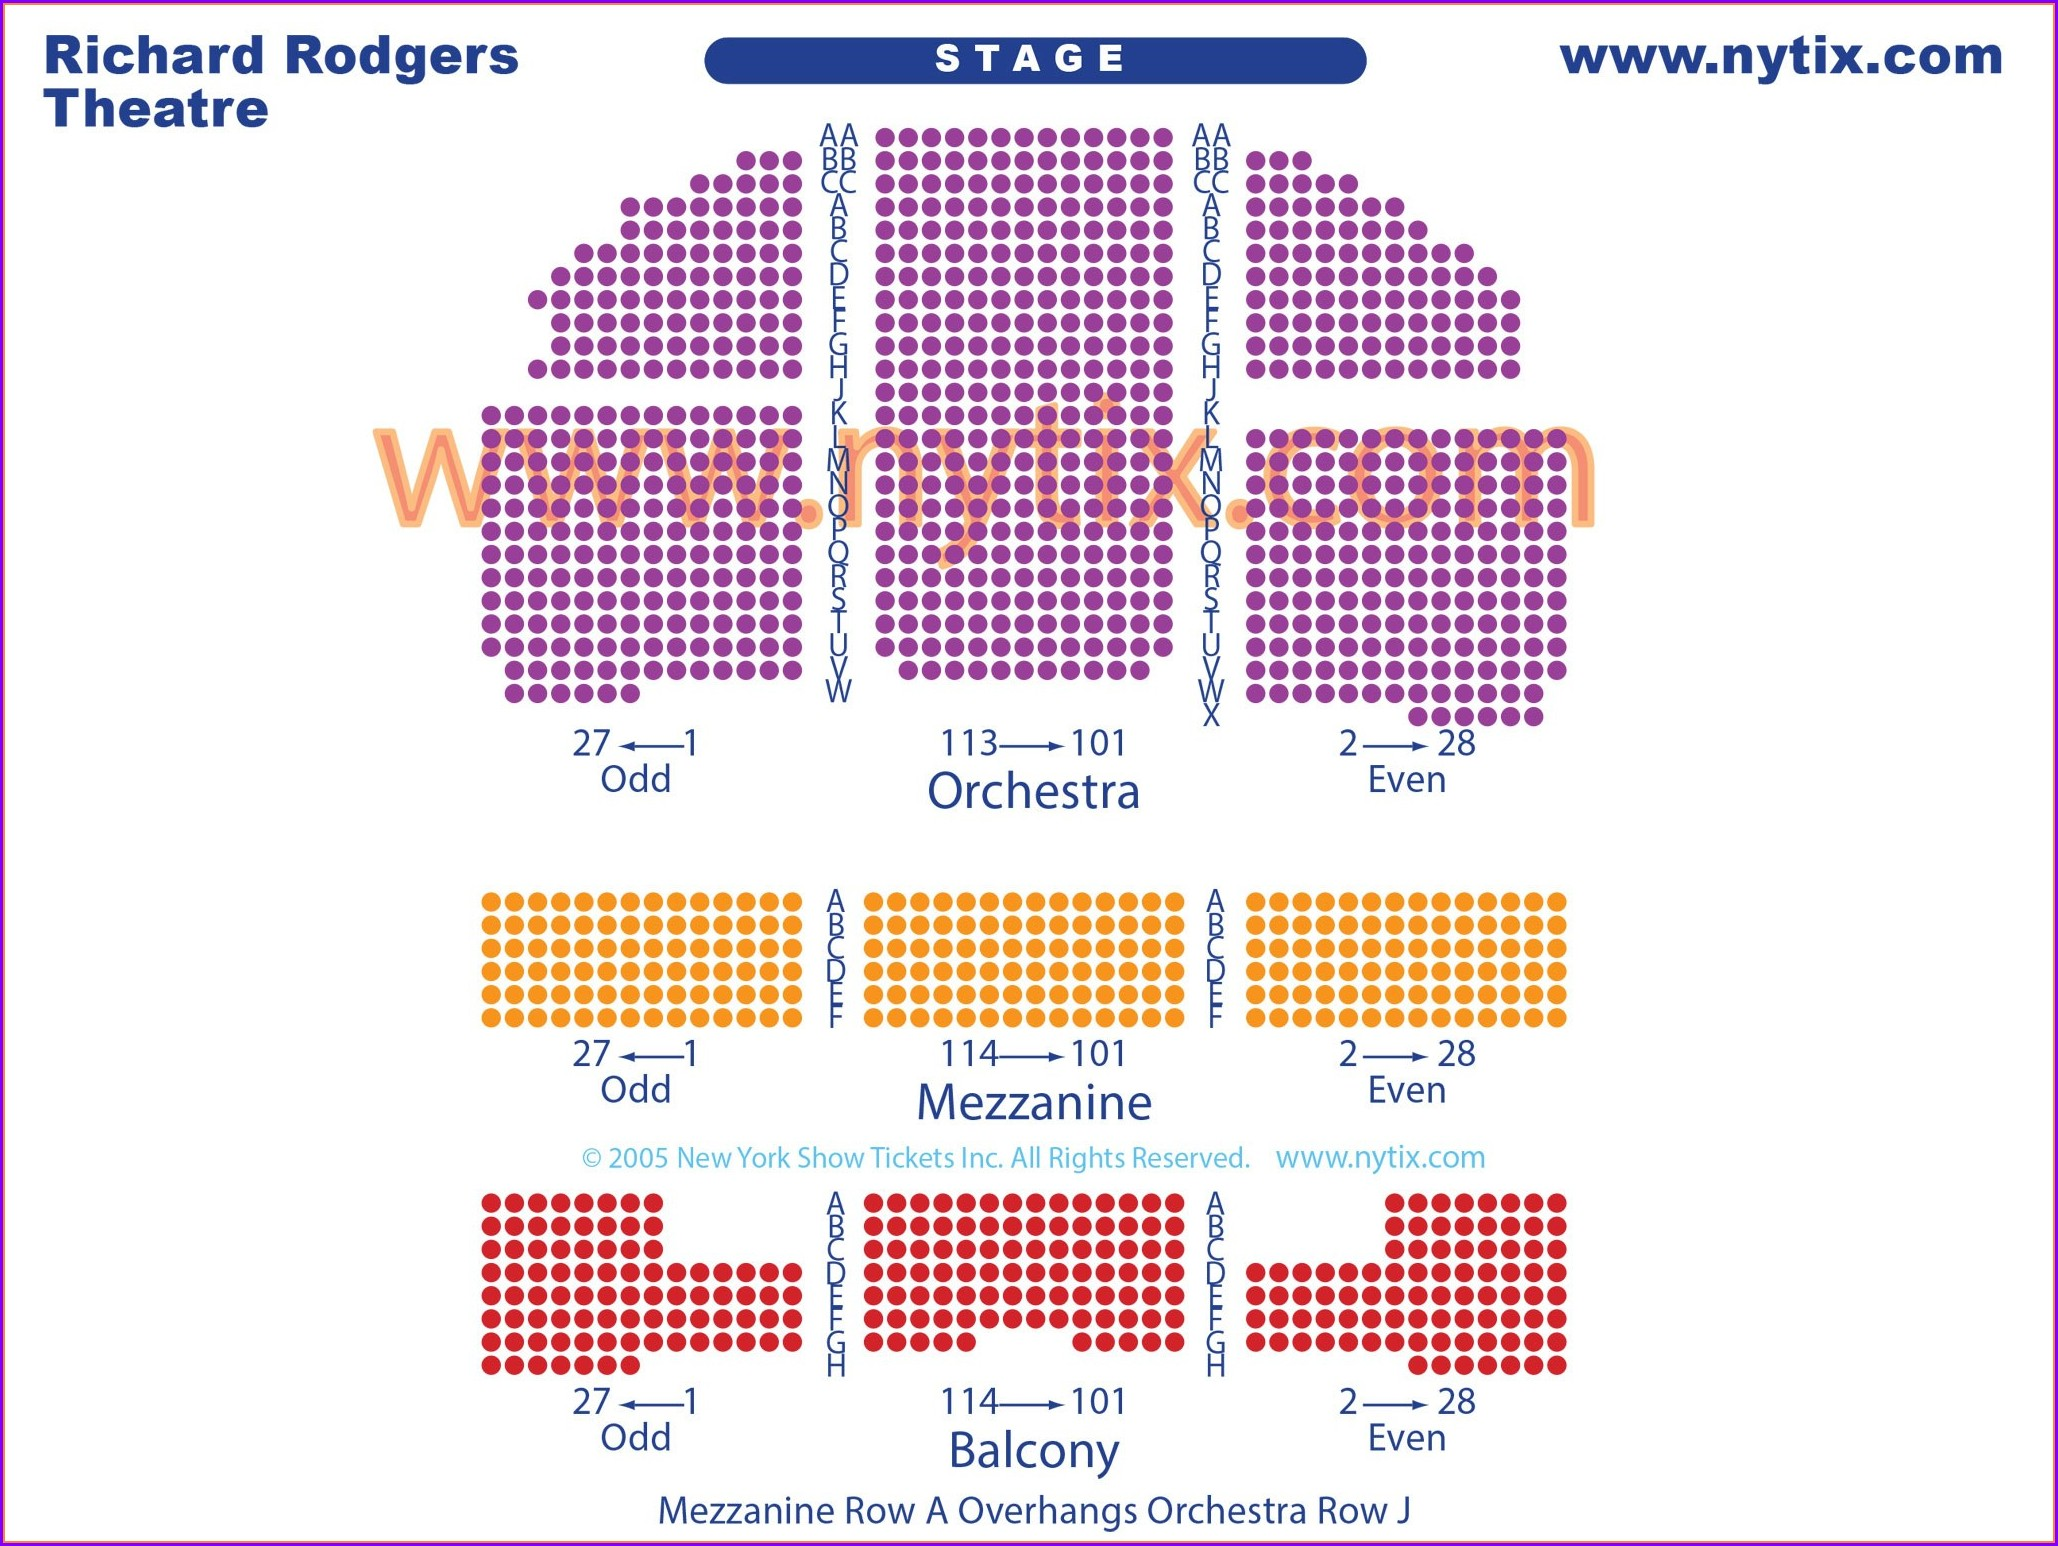 Richard Rodgers Theater Seat Map